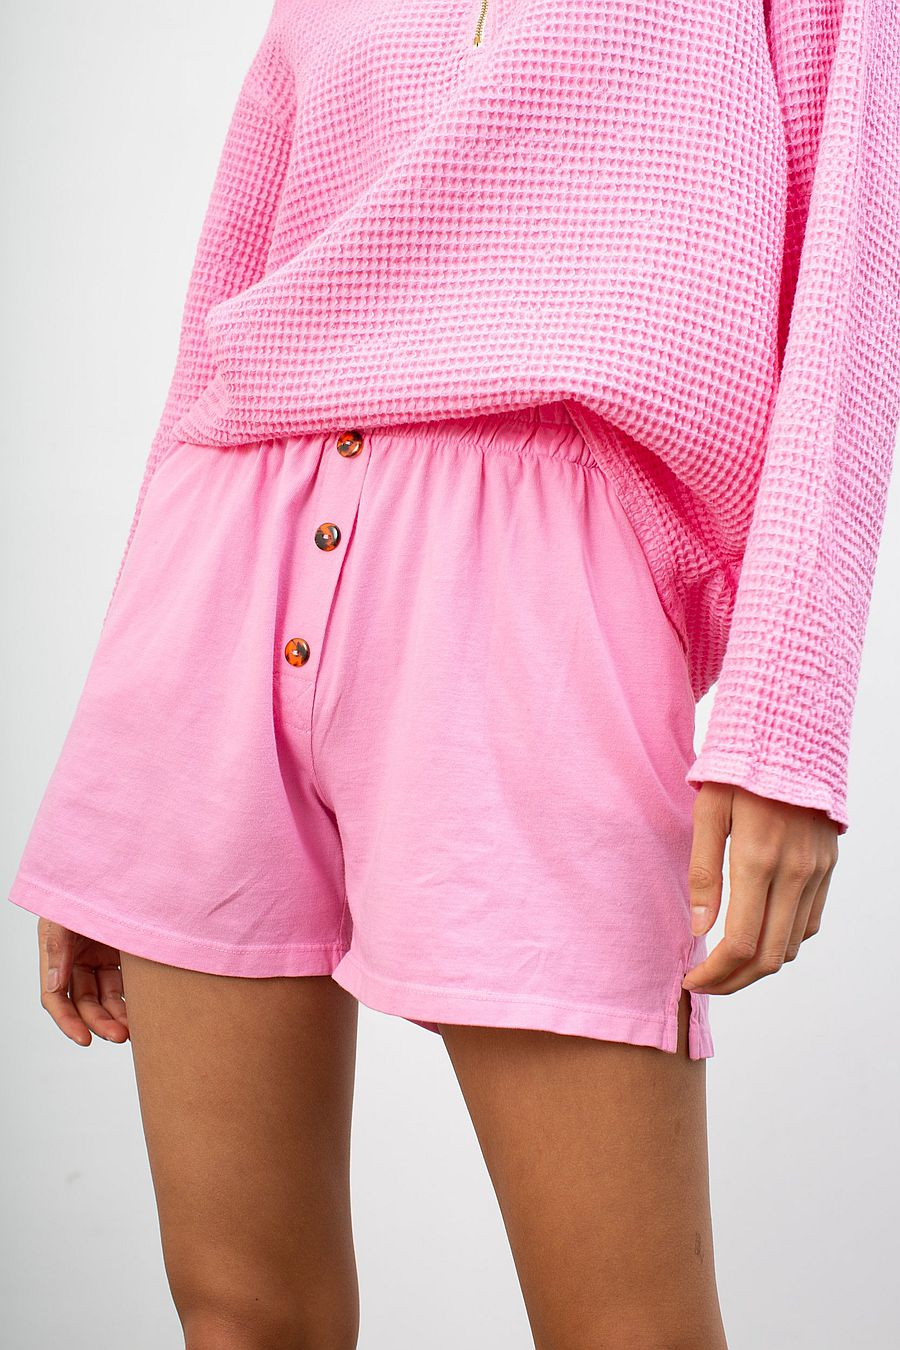 DONNI. Henley Short - Flamingo